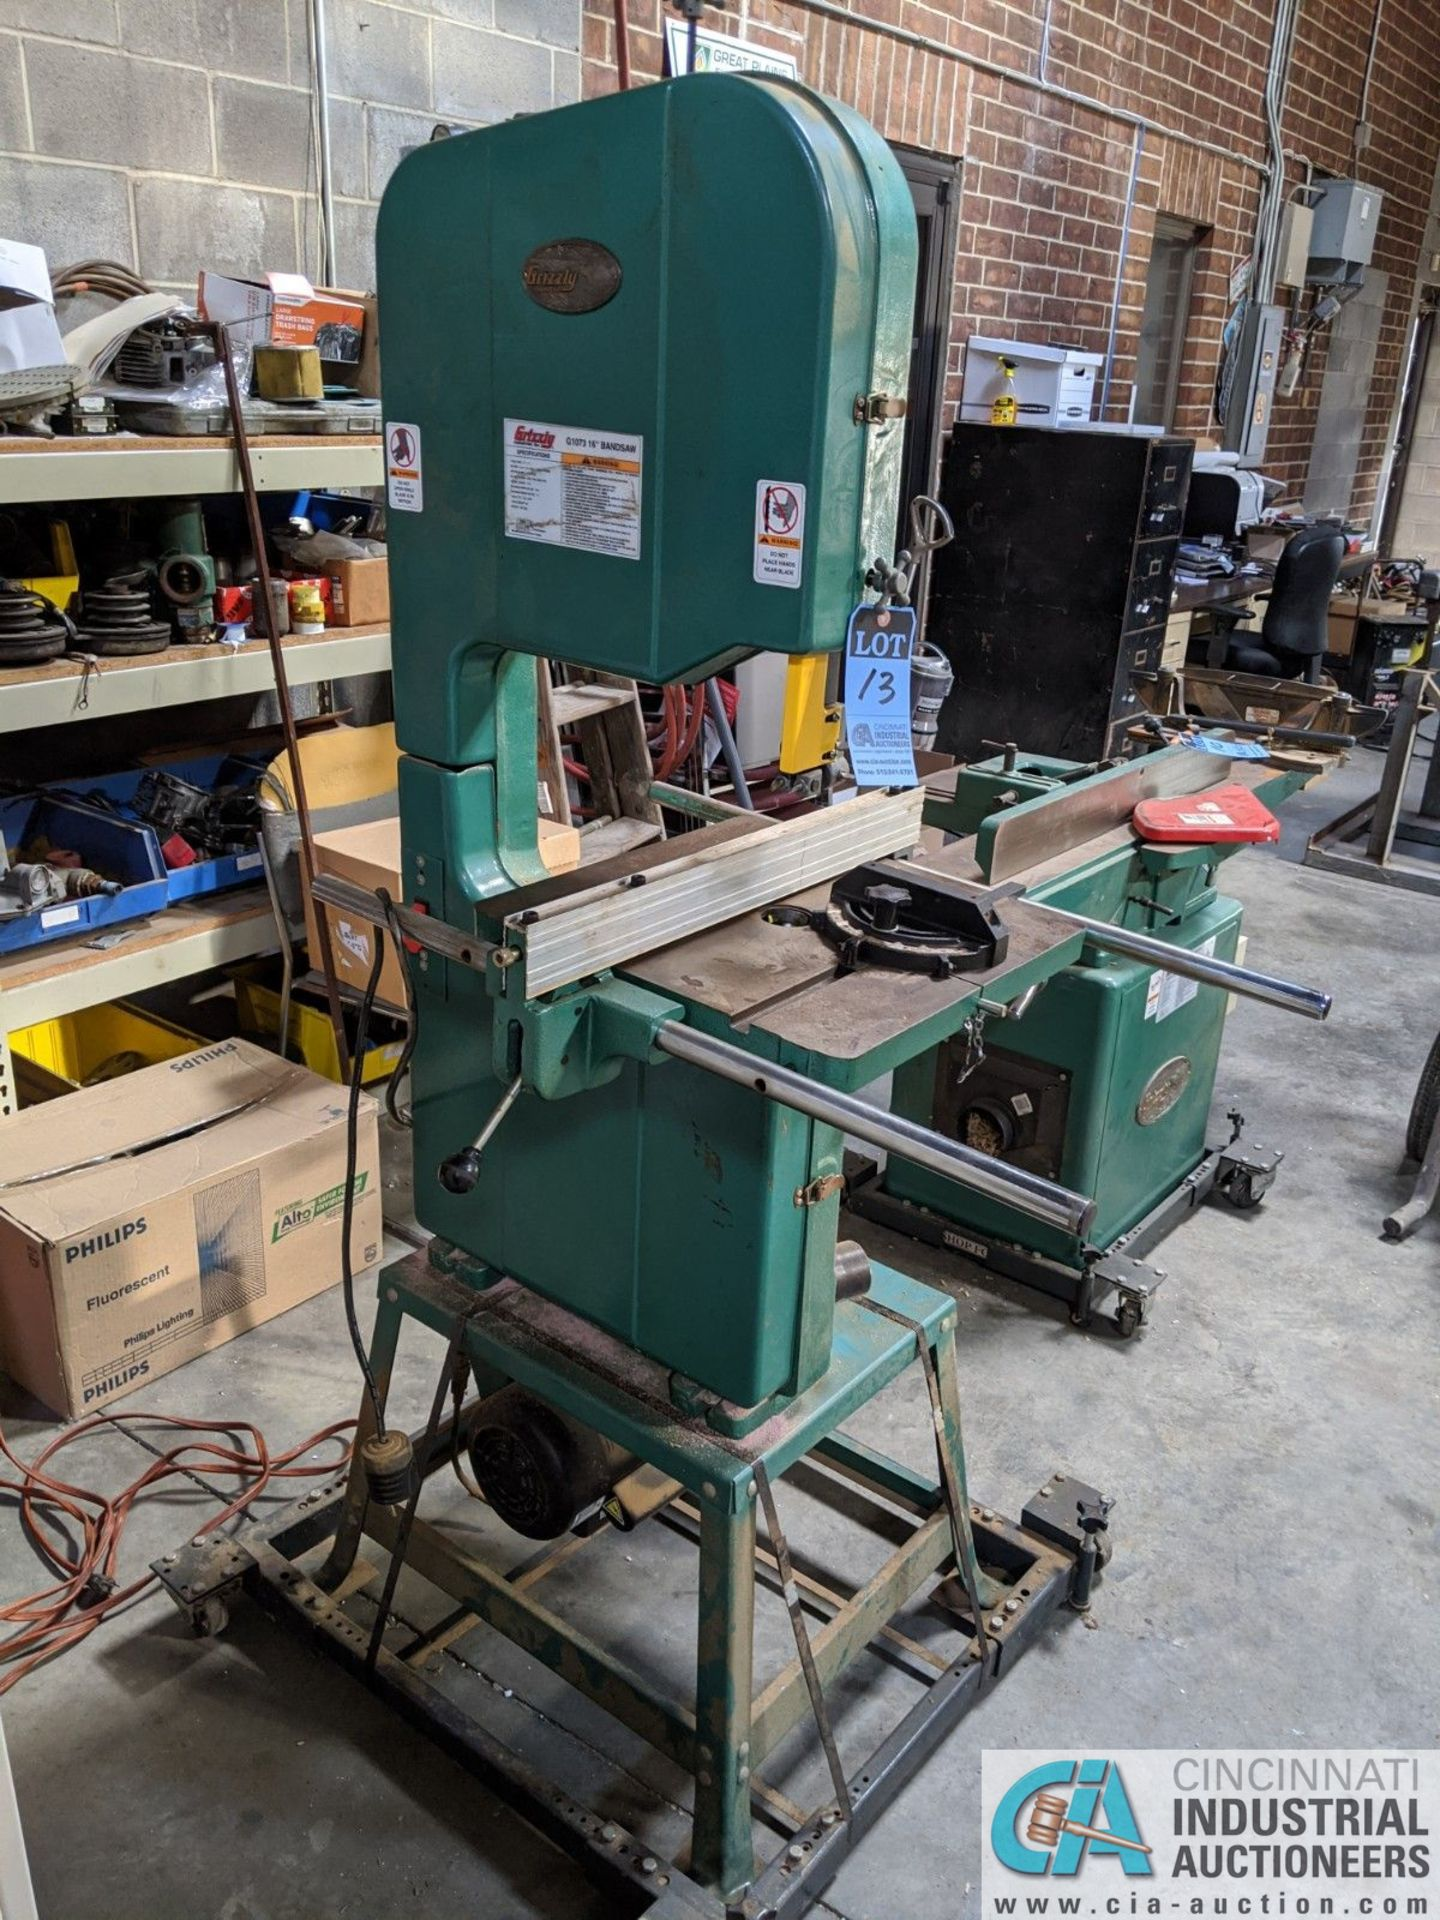 "16"" GRIZZLY MODEL G1073 VERTICAL BAND SAW; S/N 055901, 17"" X 17"" TABLE, 2-HP, SINGLE PHASE (8635 - Image 2 of 4"